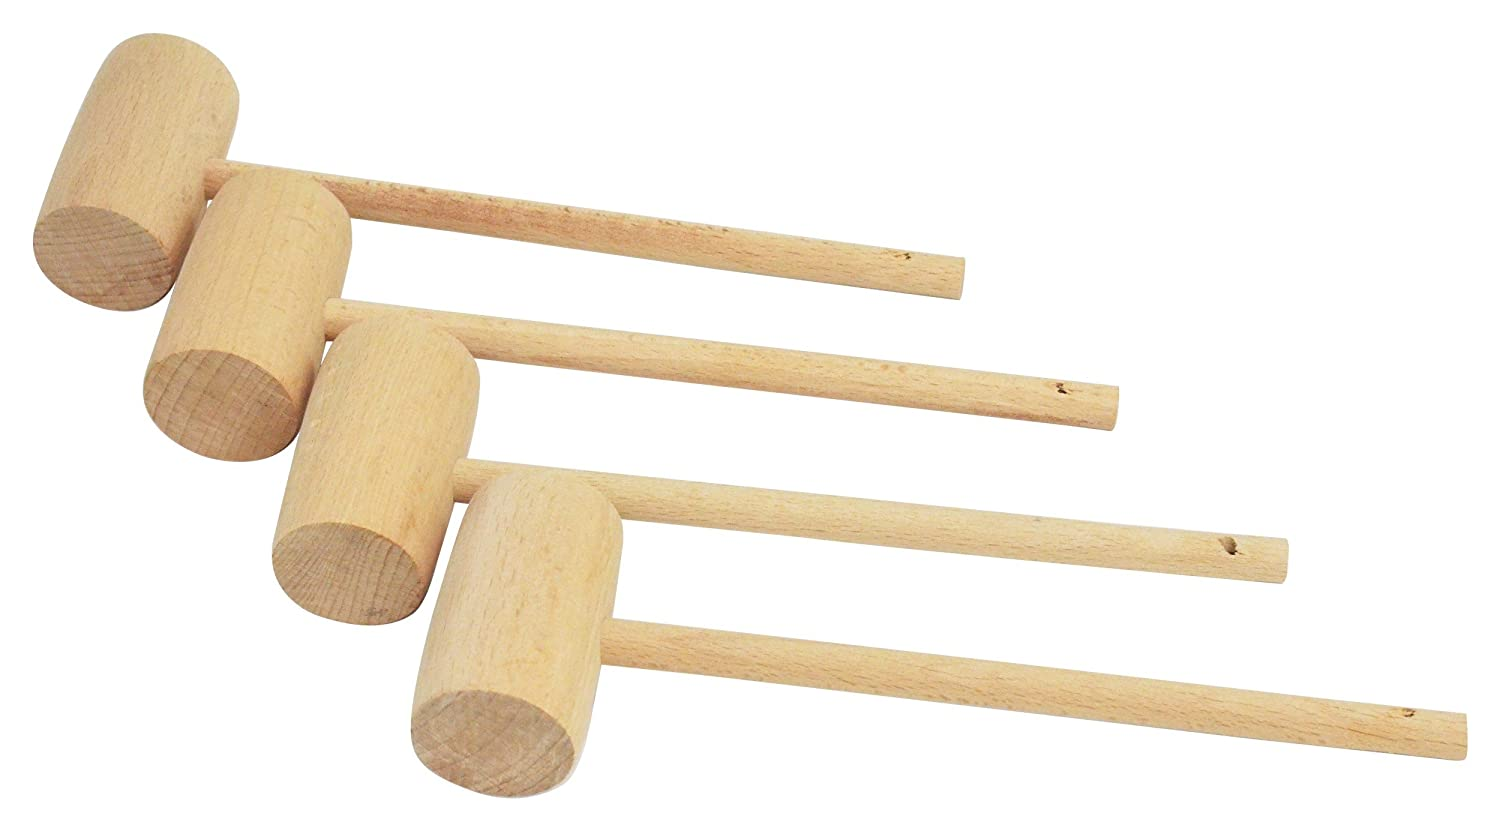 Southern Homewares Wooden Crab Mallet, Wood, Natural, 21.18 x 5.99 x 3.4 cm SH-10188-S4